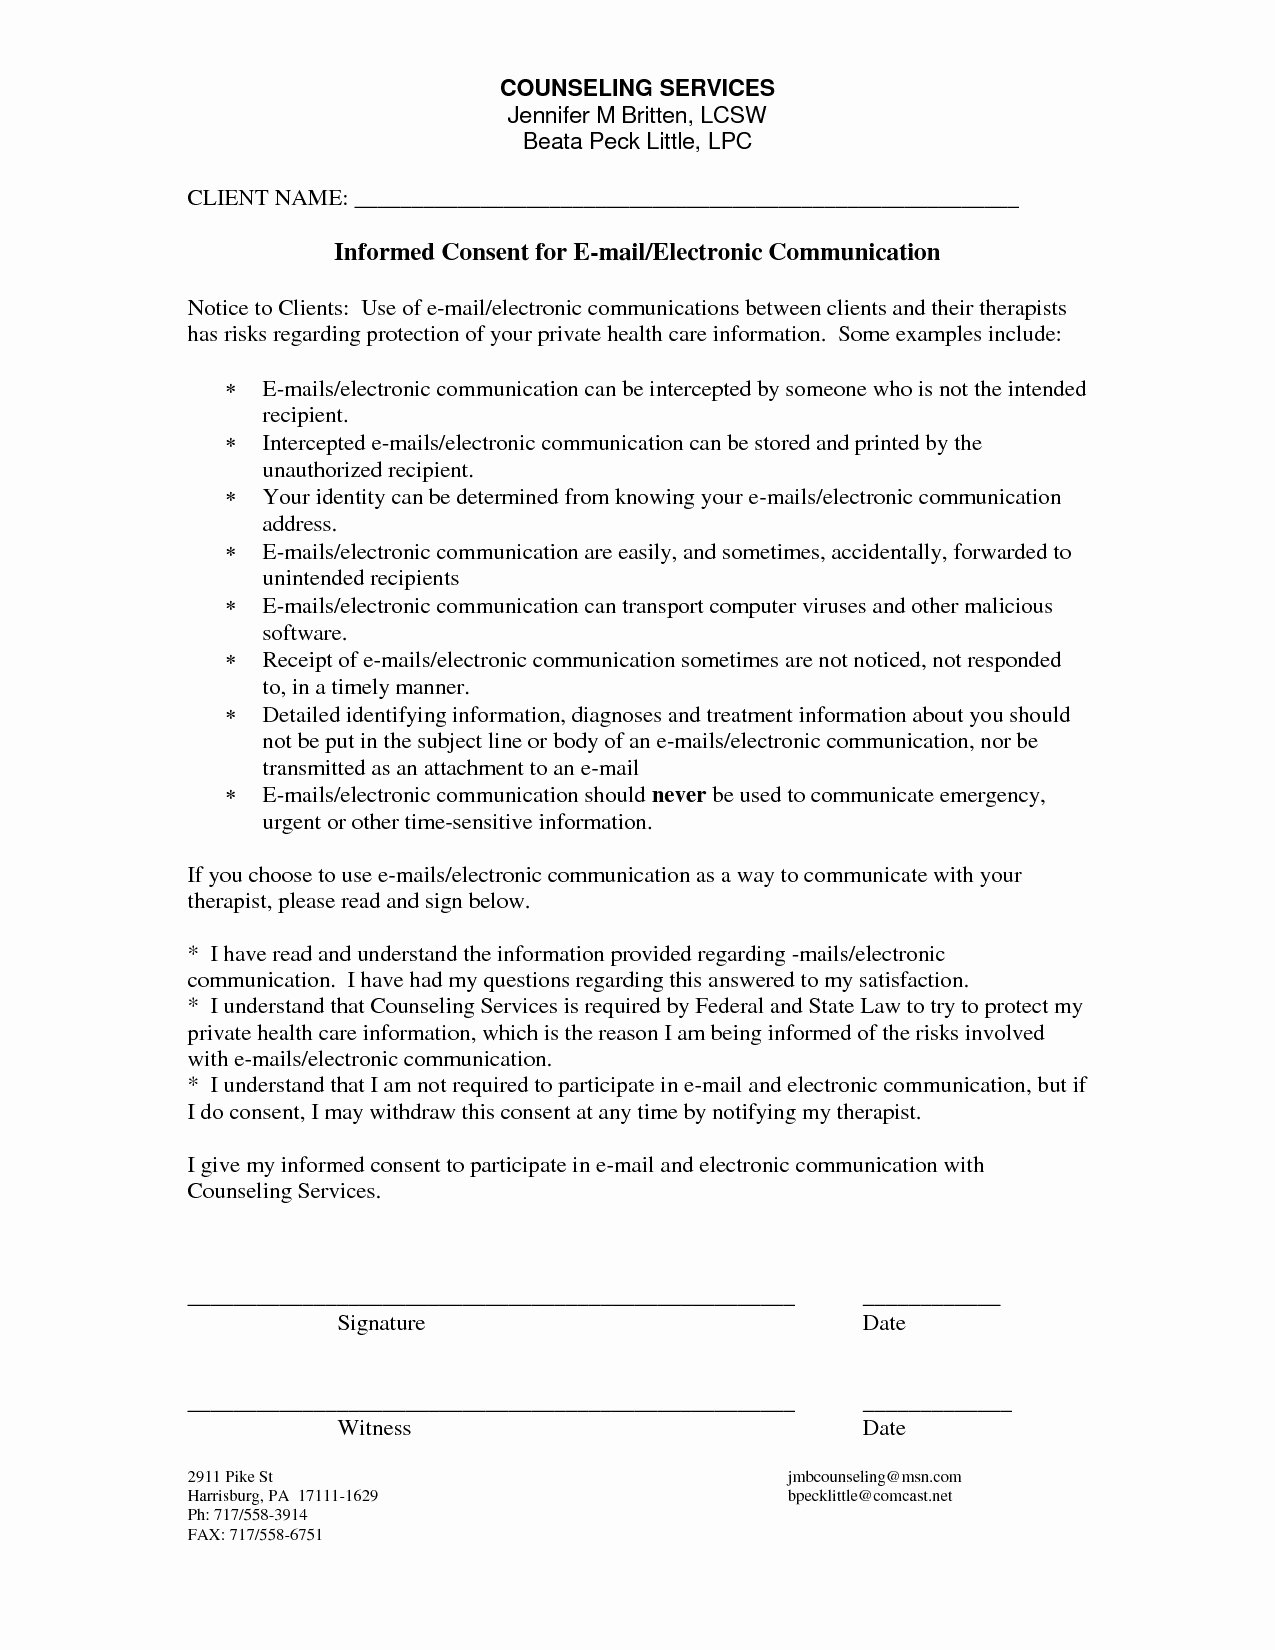 Mental Health Confidentiality Agreement Template Best Of Mental Health Confidentiality Agreement Template Best Best